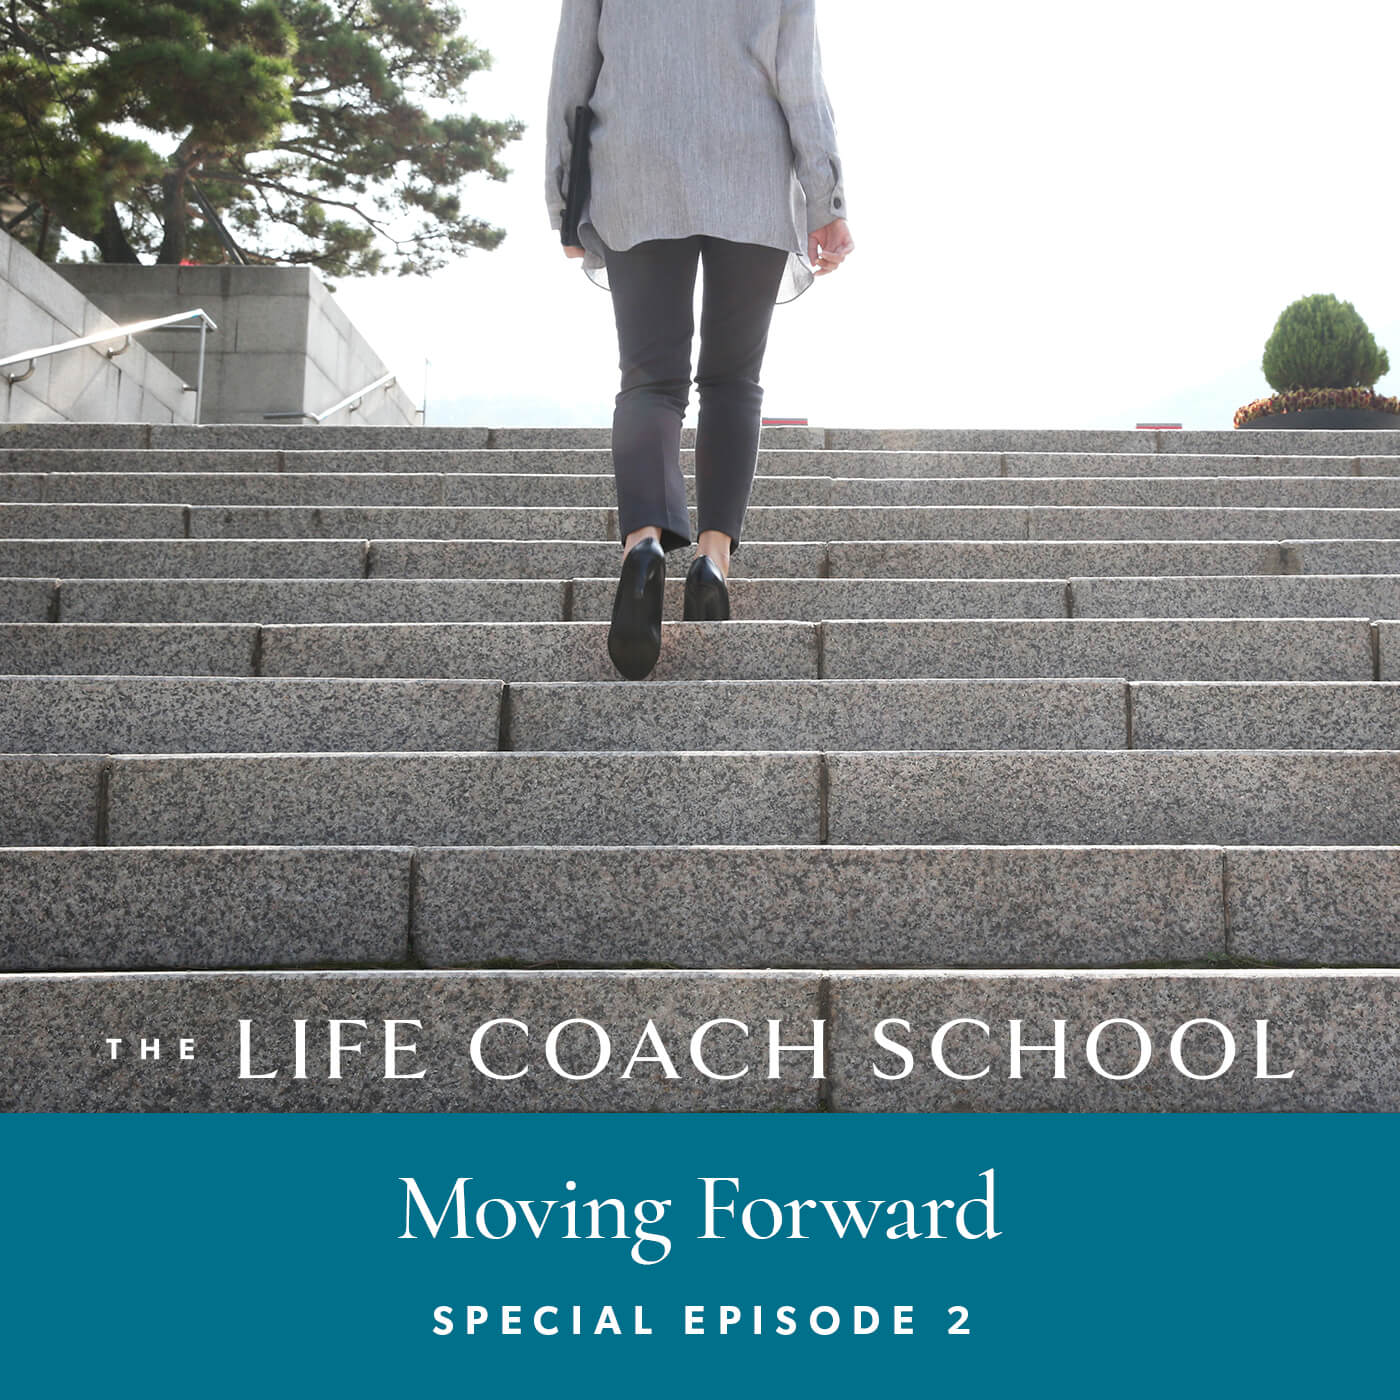 The Life Coach School Podcast with Brooke Castillo | Special Episode | Moving Forward 2